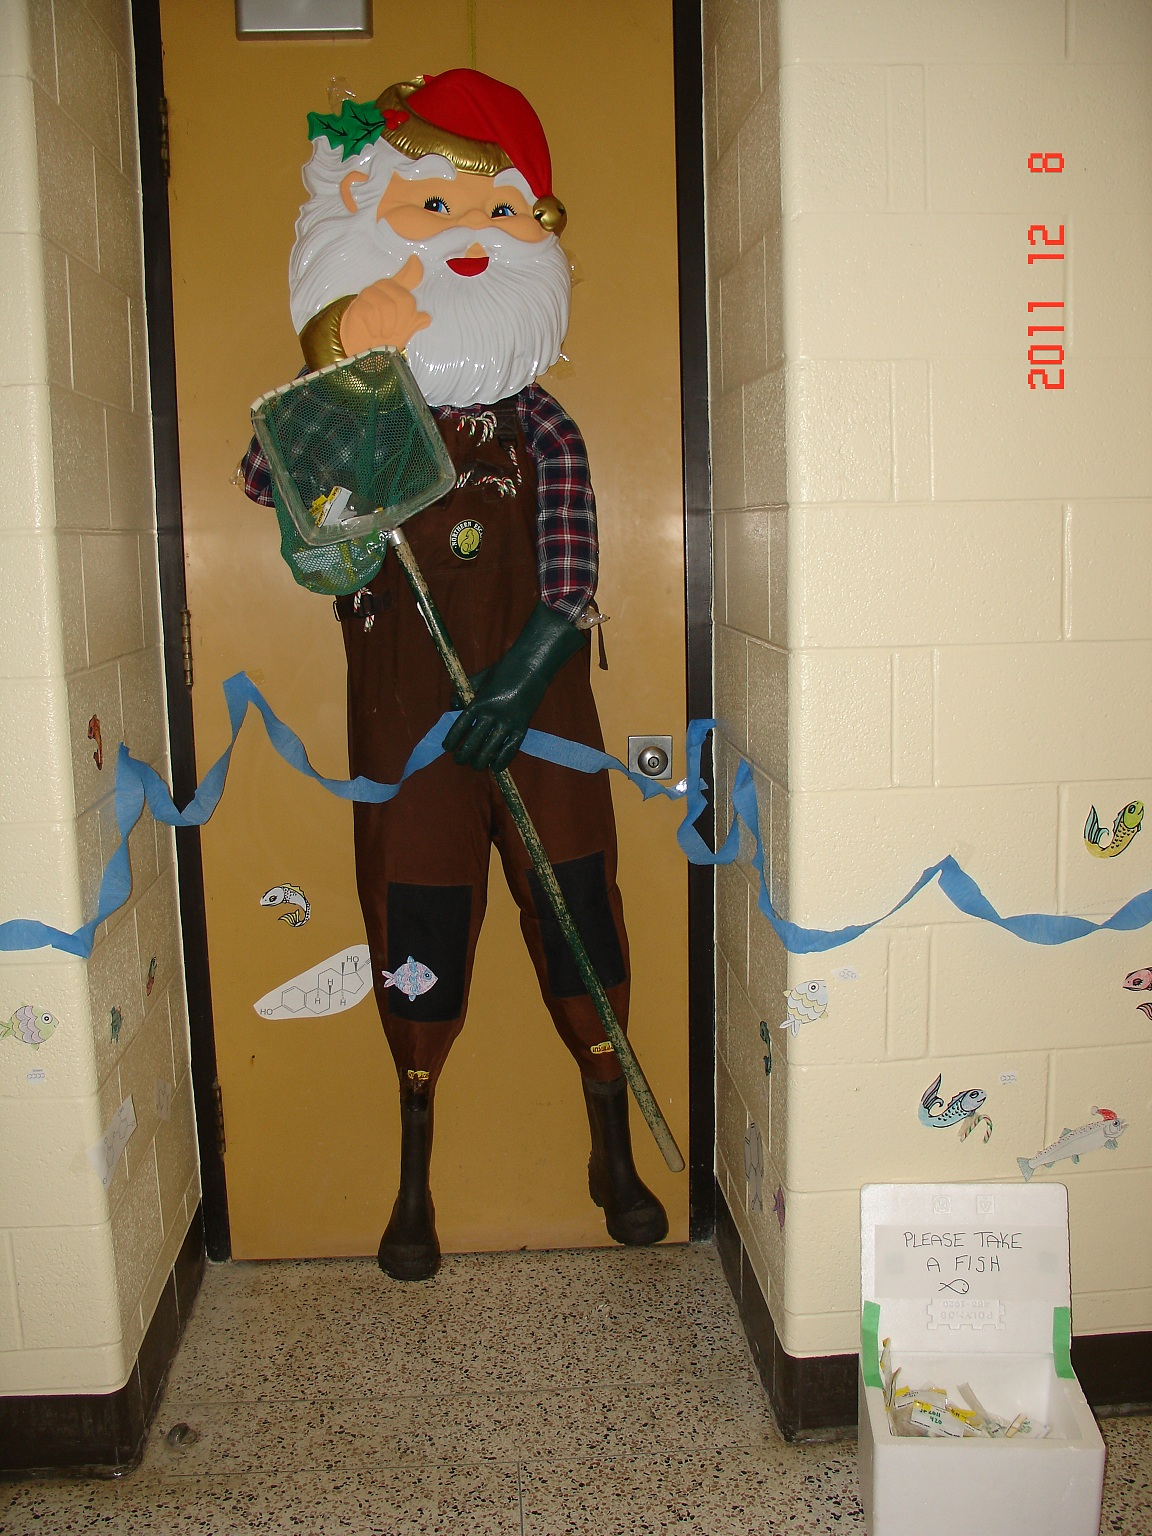 Christmas door decorating contest results & UW Biology Graduate Student Association: Christmas door decorating ...